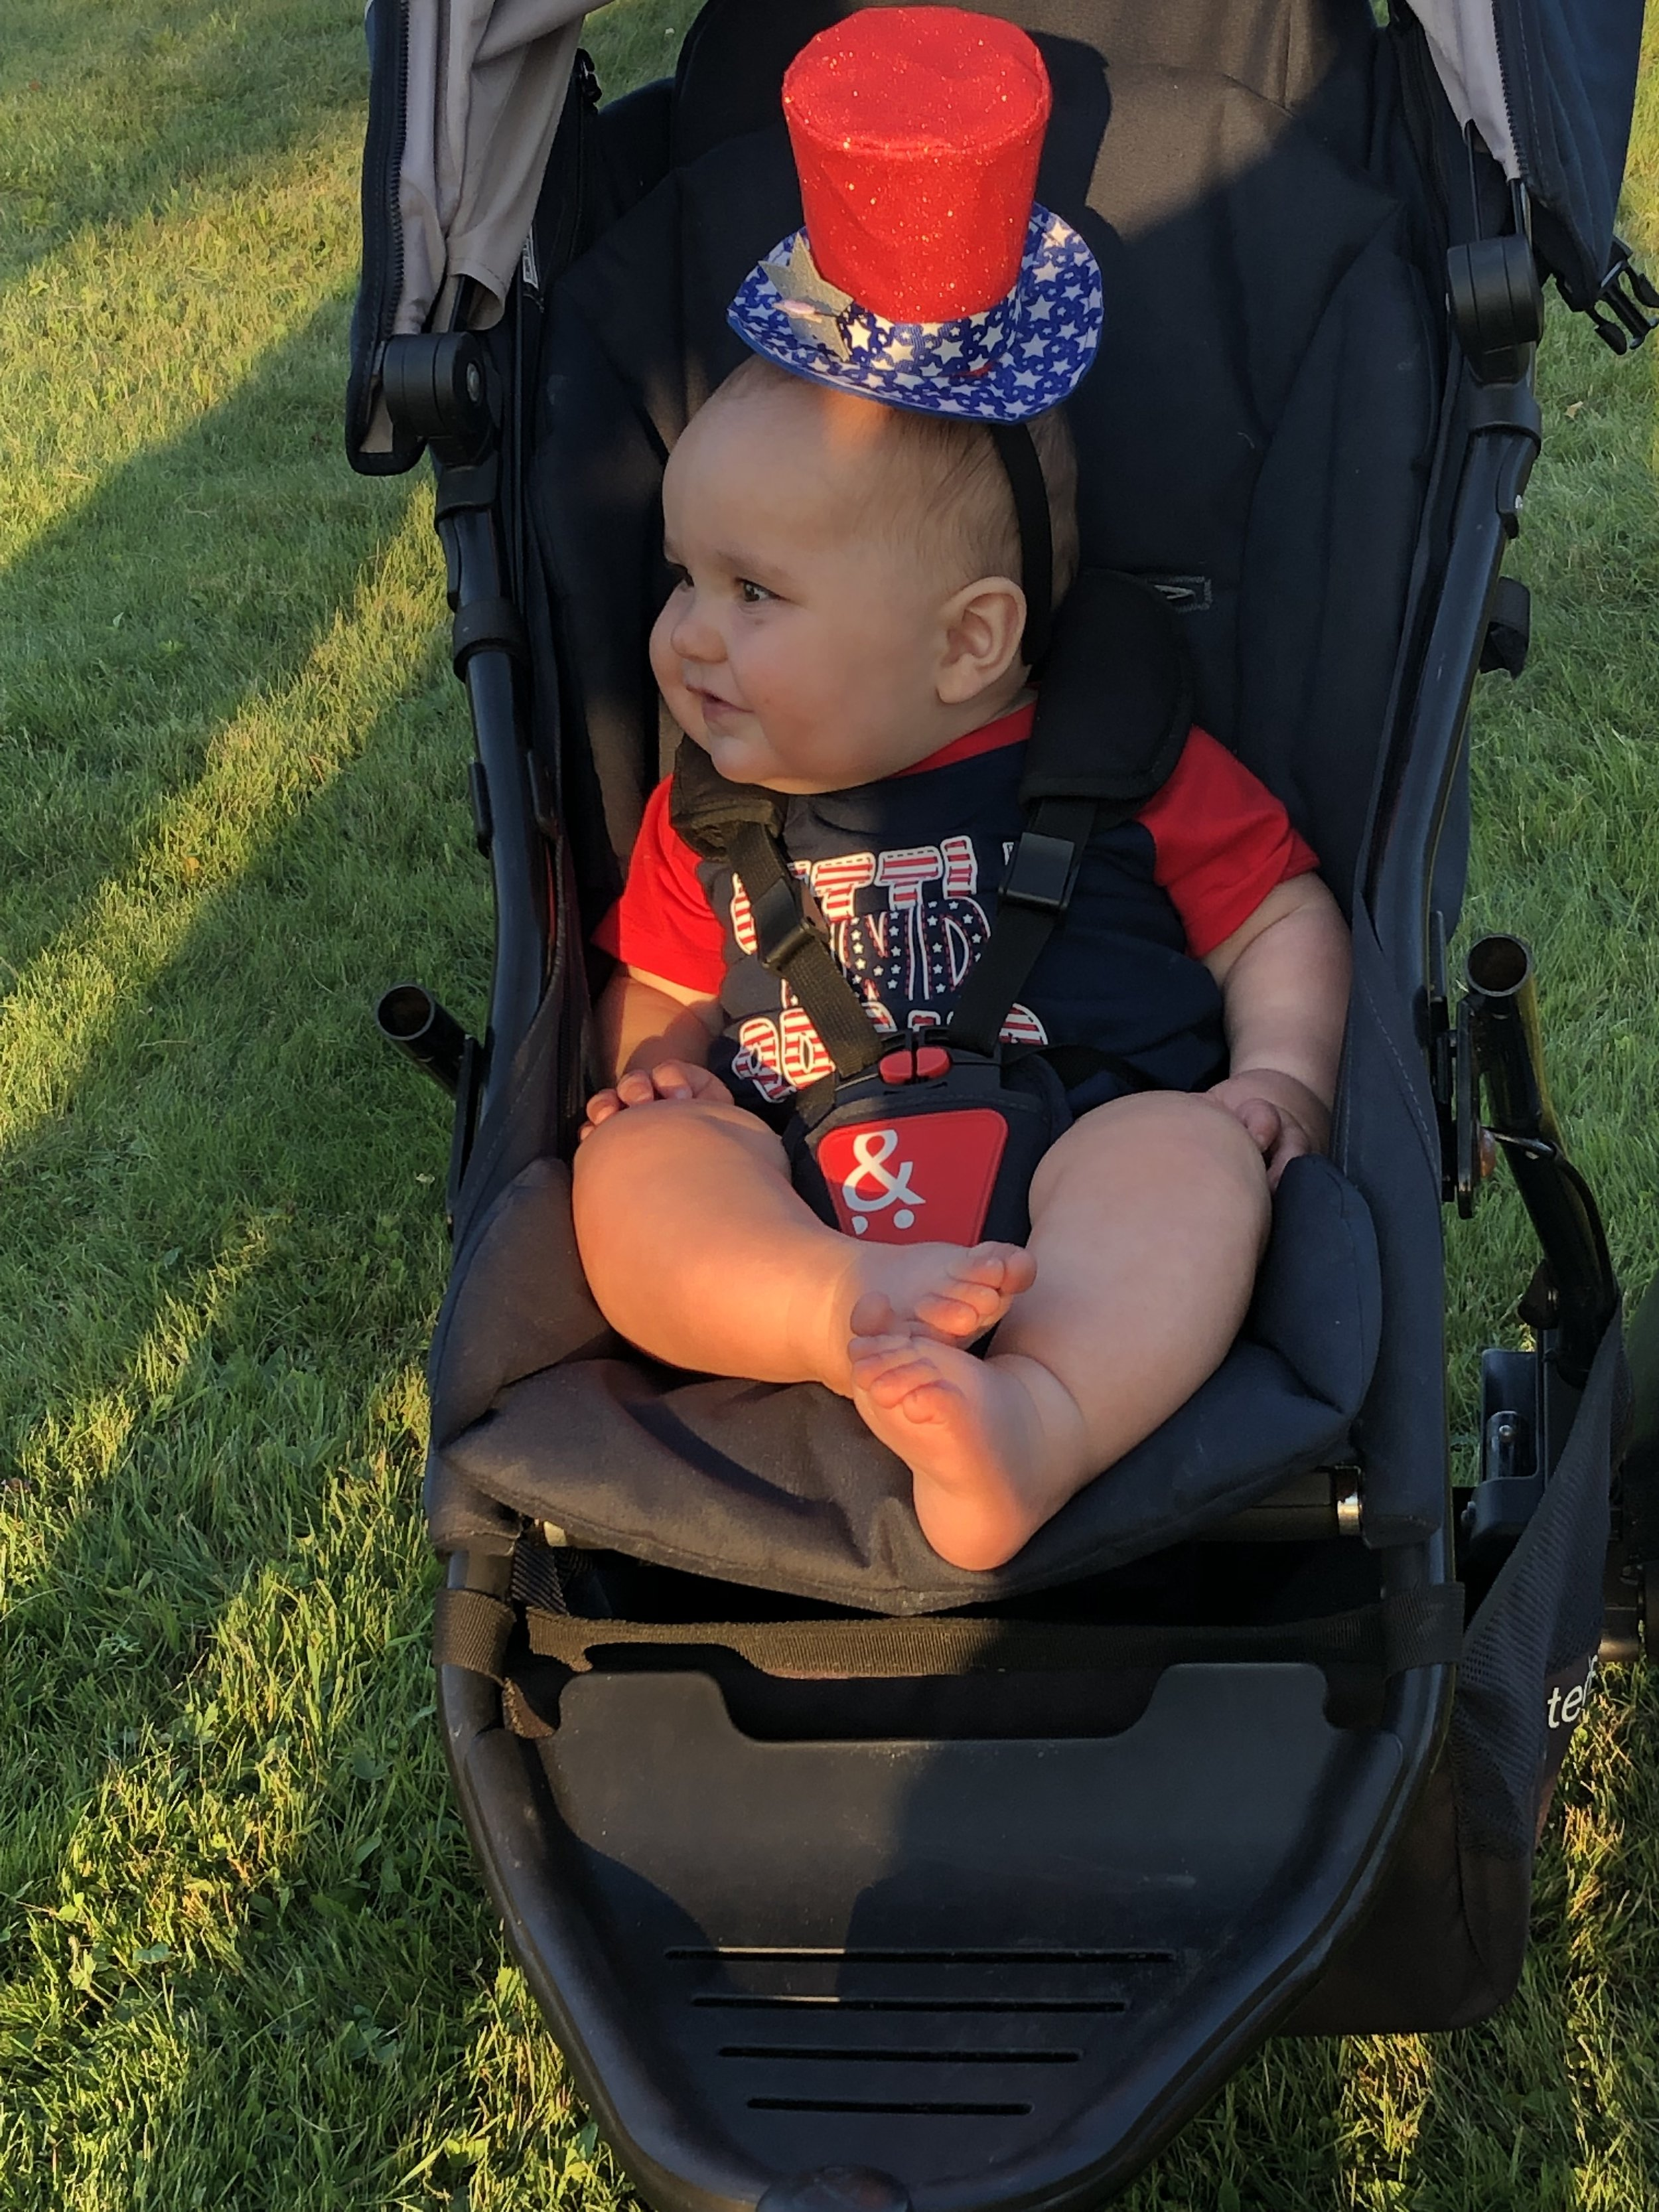 The happiest July Fourth baby to grace the new lawns overlooking the Flanders Park bandshell Wednesday evening was Shannon and Josh Trembley's third boy, Tommy, brother to Frank and Louie. The lad came decked for the occasion. More photos on our web site this week.